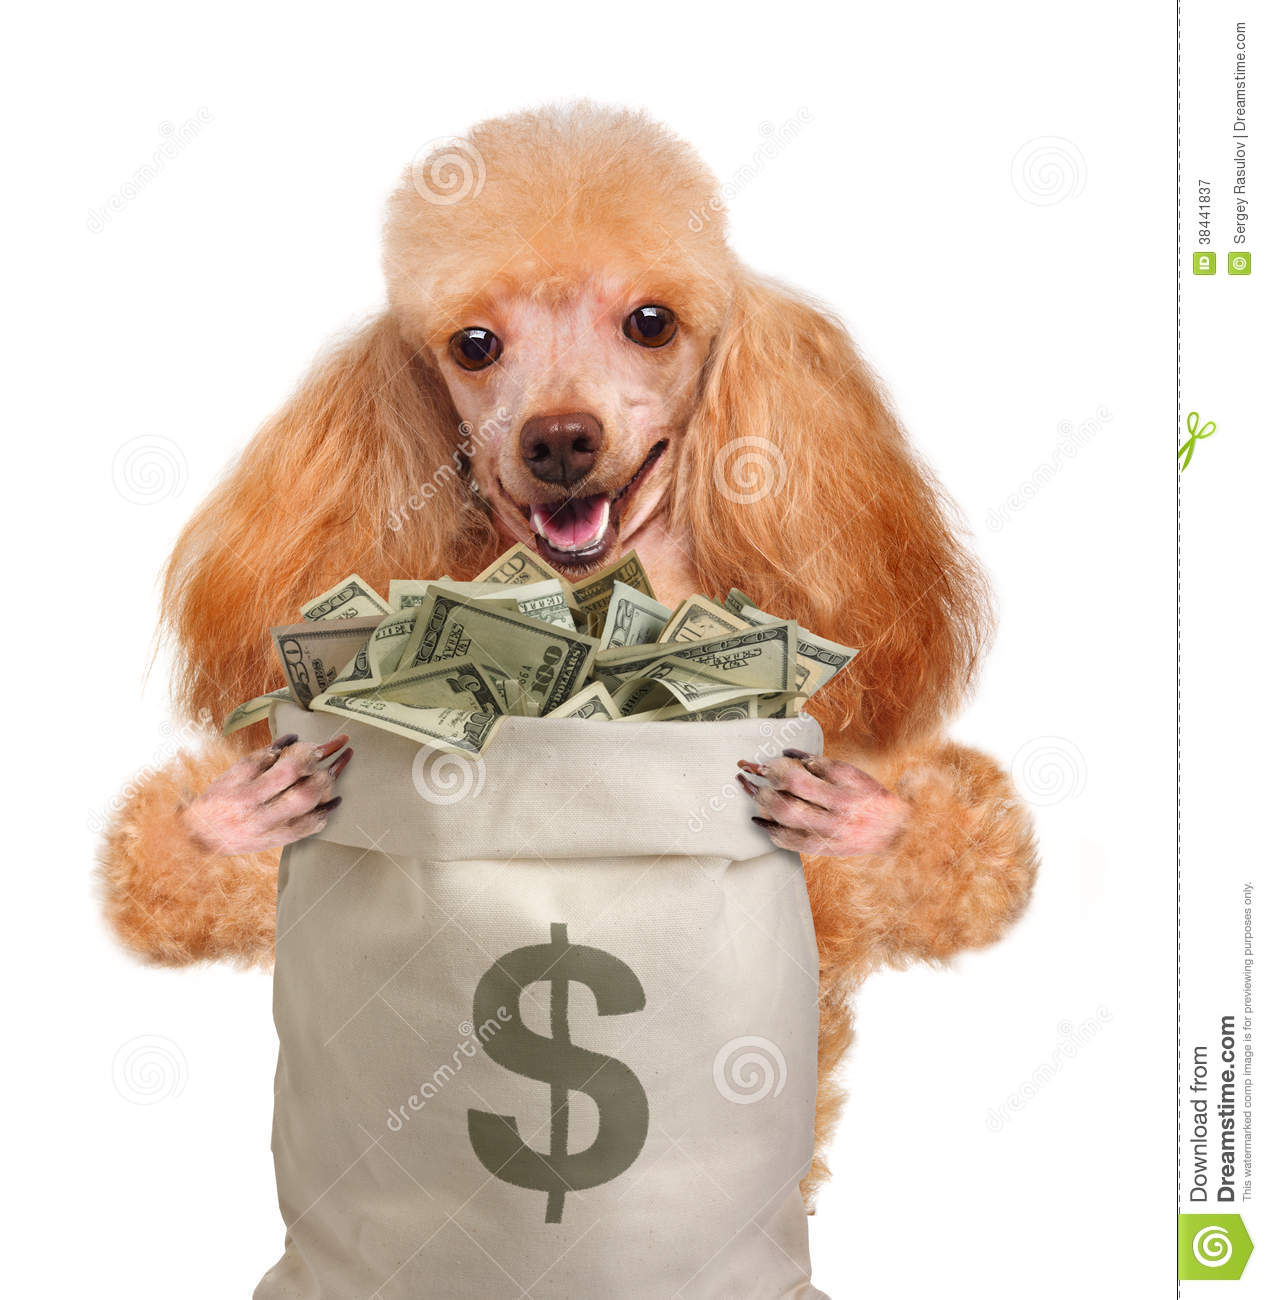 Money Dog Holding. Royalty Free Stock Photography - Image: 38441837